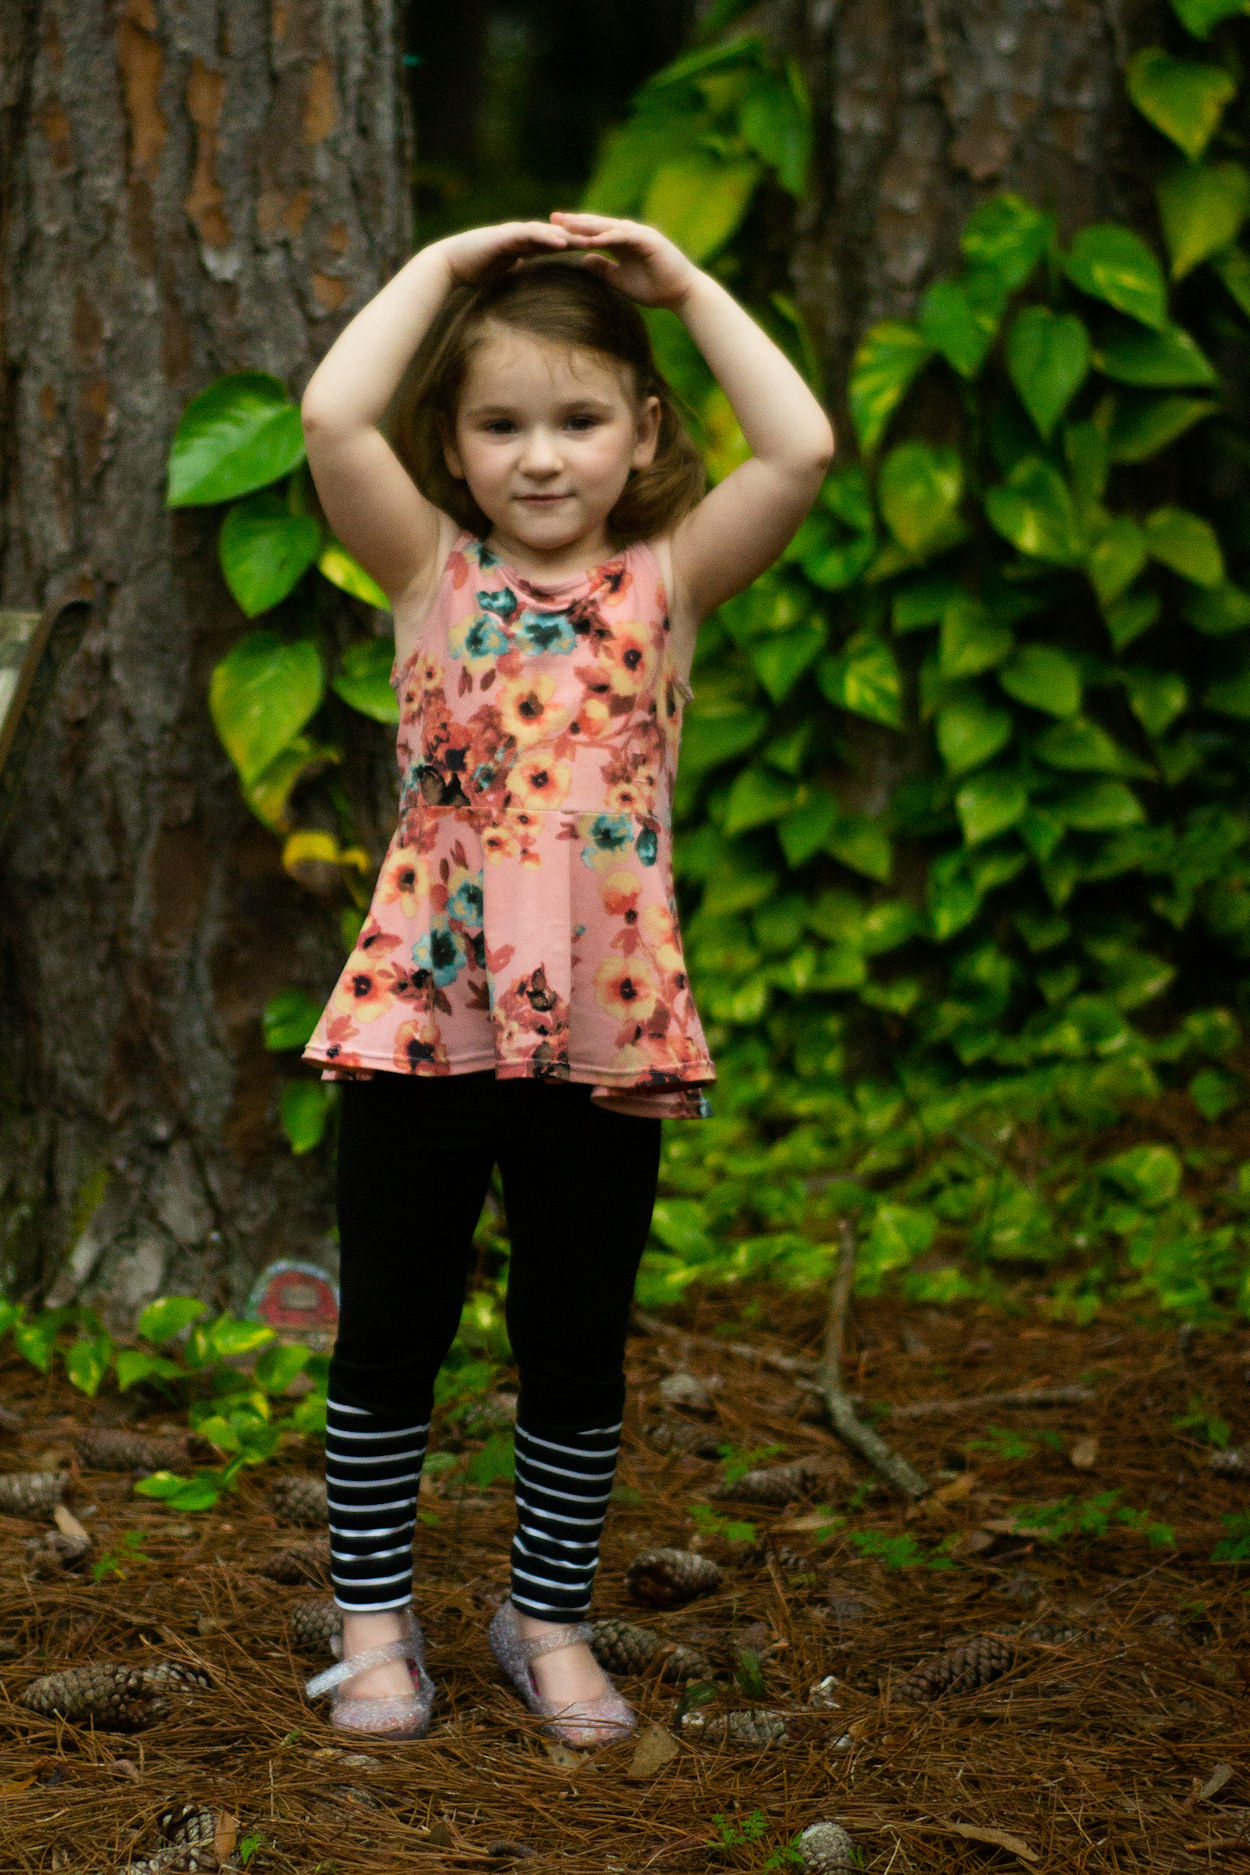 Rocky Shore tights for gymnastics or play. Lower panel with slight angle for colour blocking. Shown with Dandelion tank.